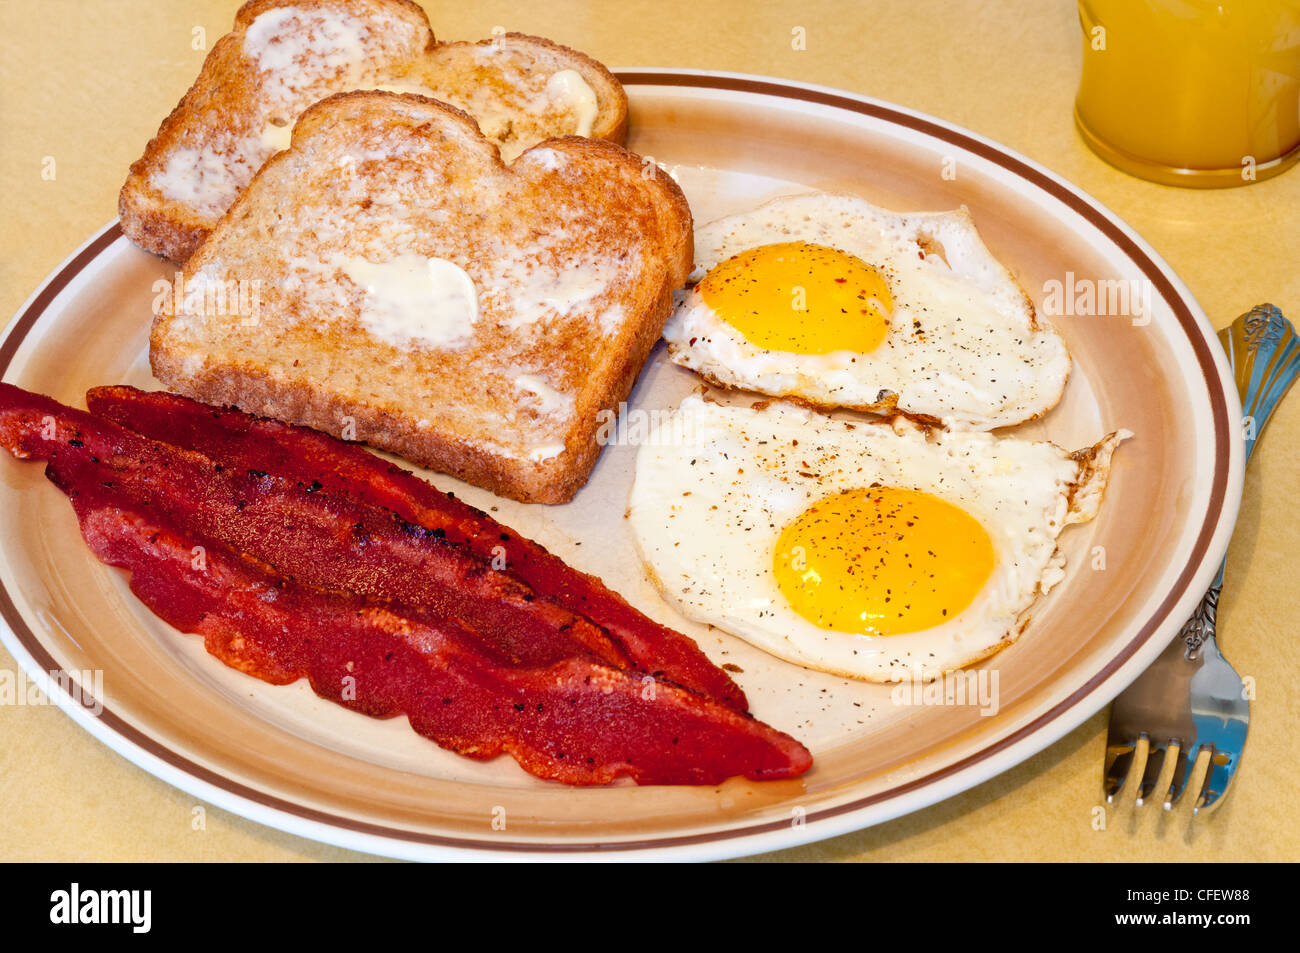 Simple Breakfast Of Fried Eggs Bacon Toast And Juice